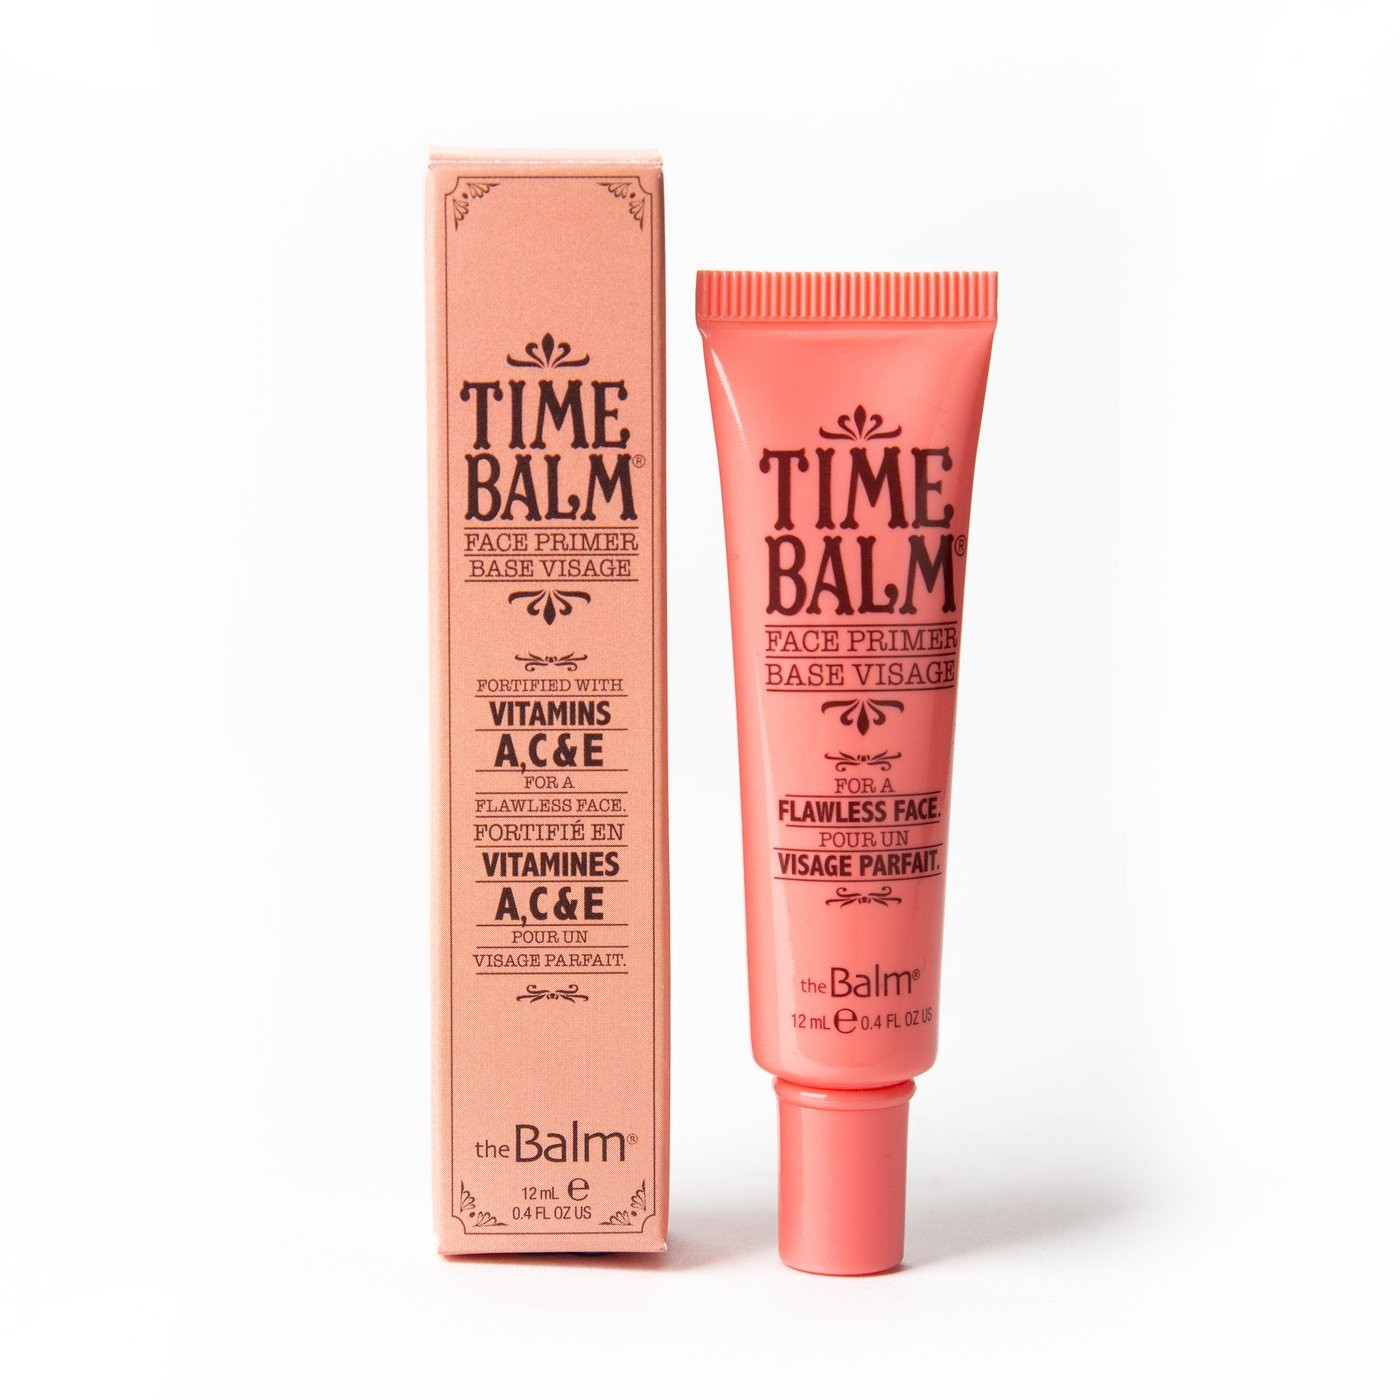 TimeBalm Face Primer Travel Size